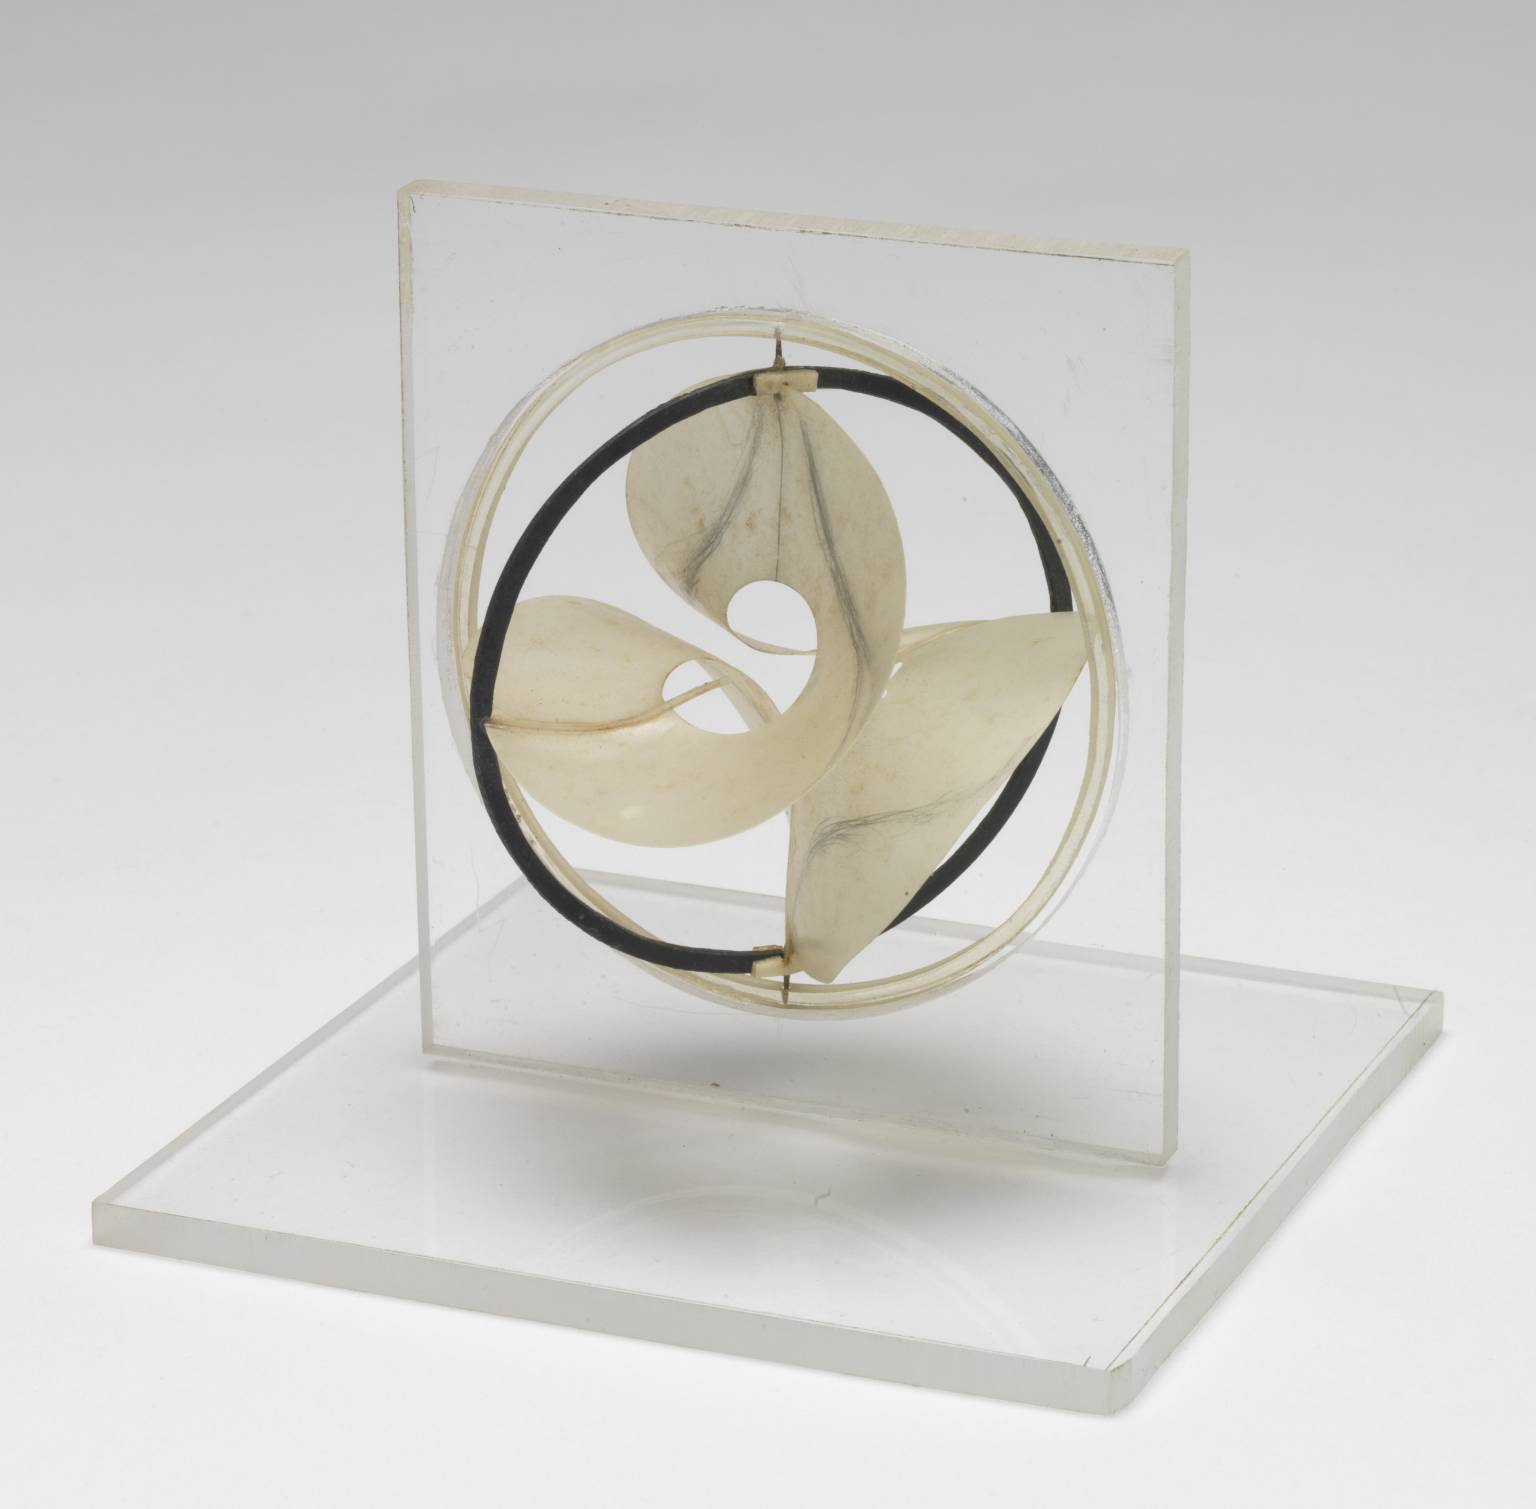 Model for 'Monument to the Astronauts' circa 1966-8 by Naum Gabo 1890-1977